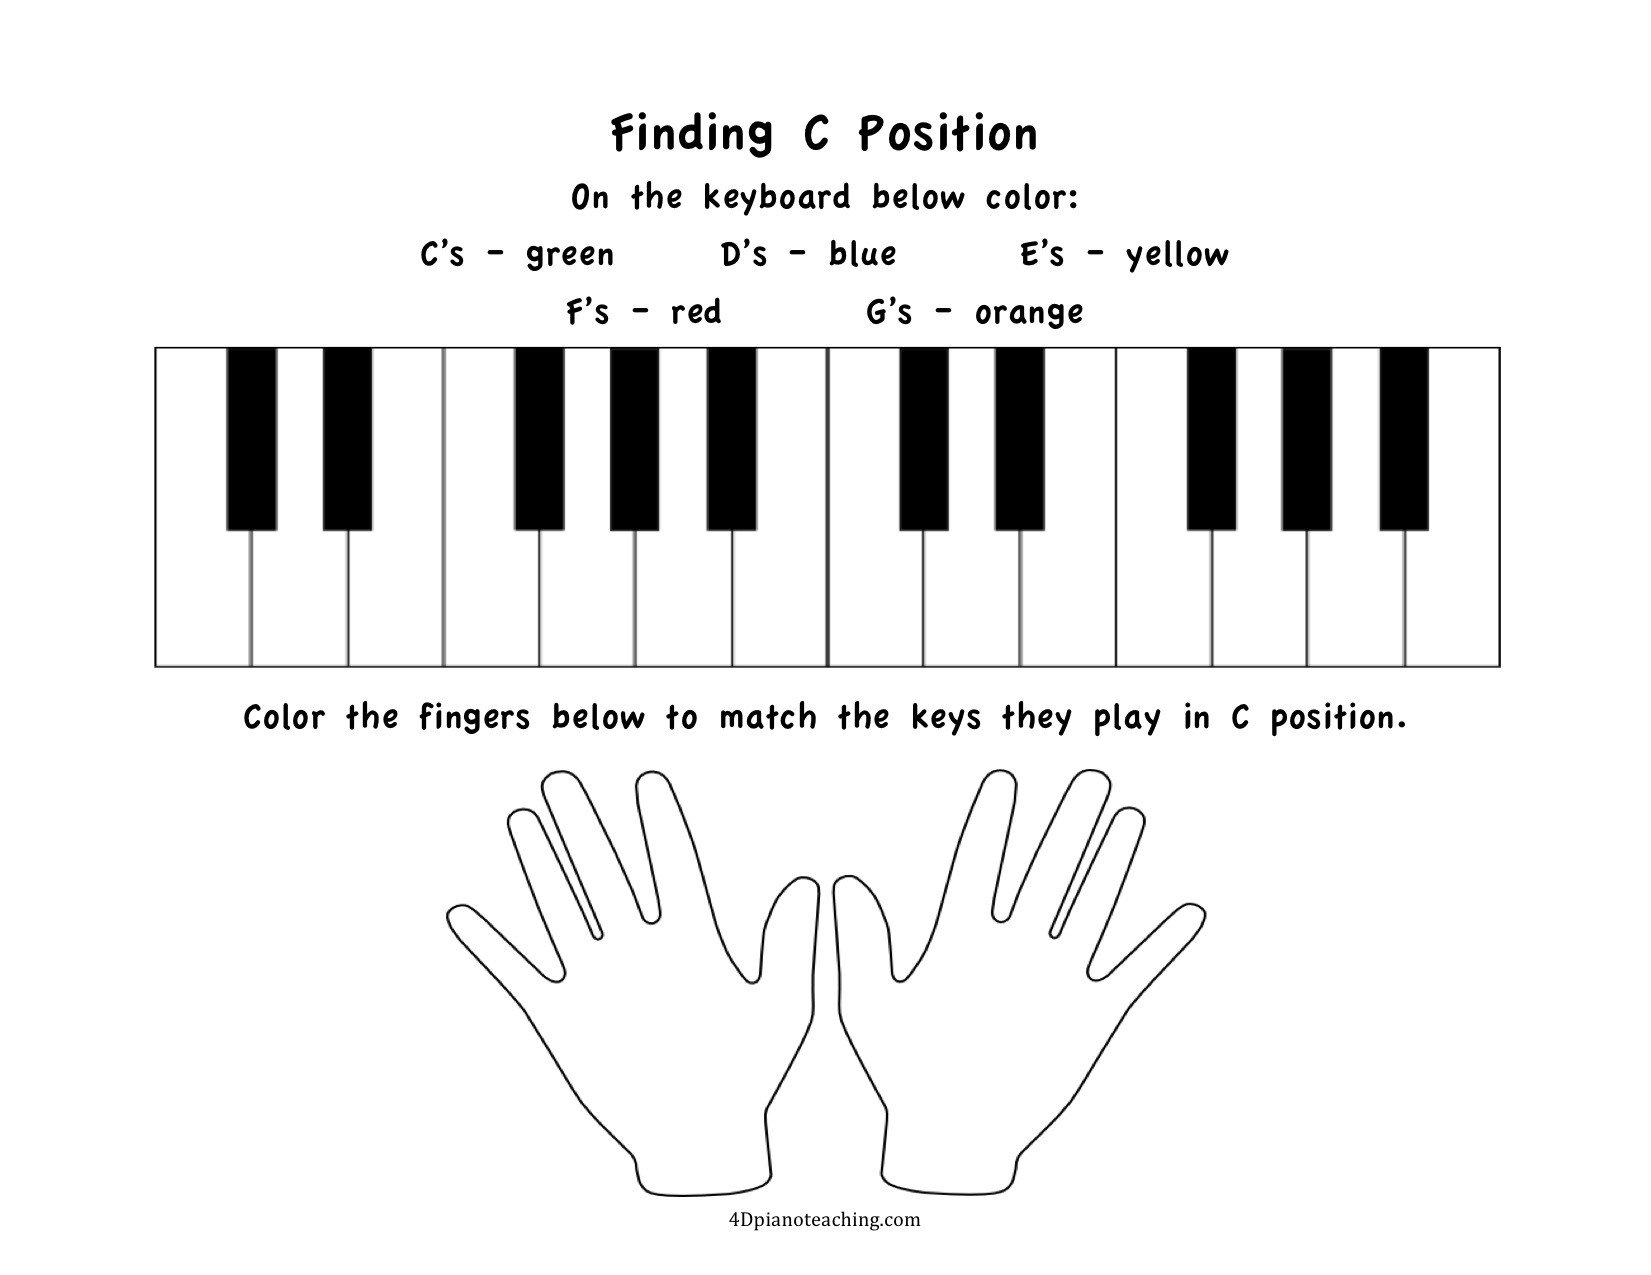 Printable Keyboarding Worksheets Free Printables C Position Worksheets 4dpianoteaching